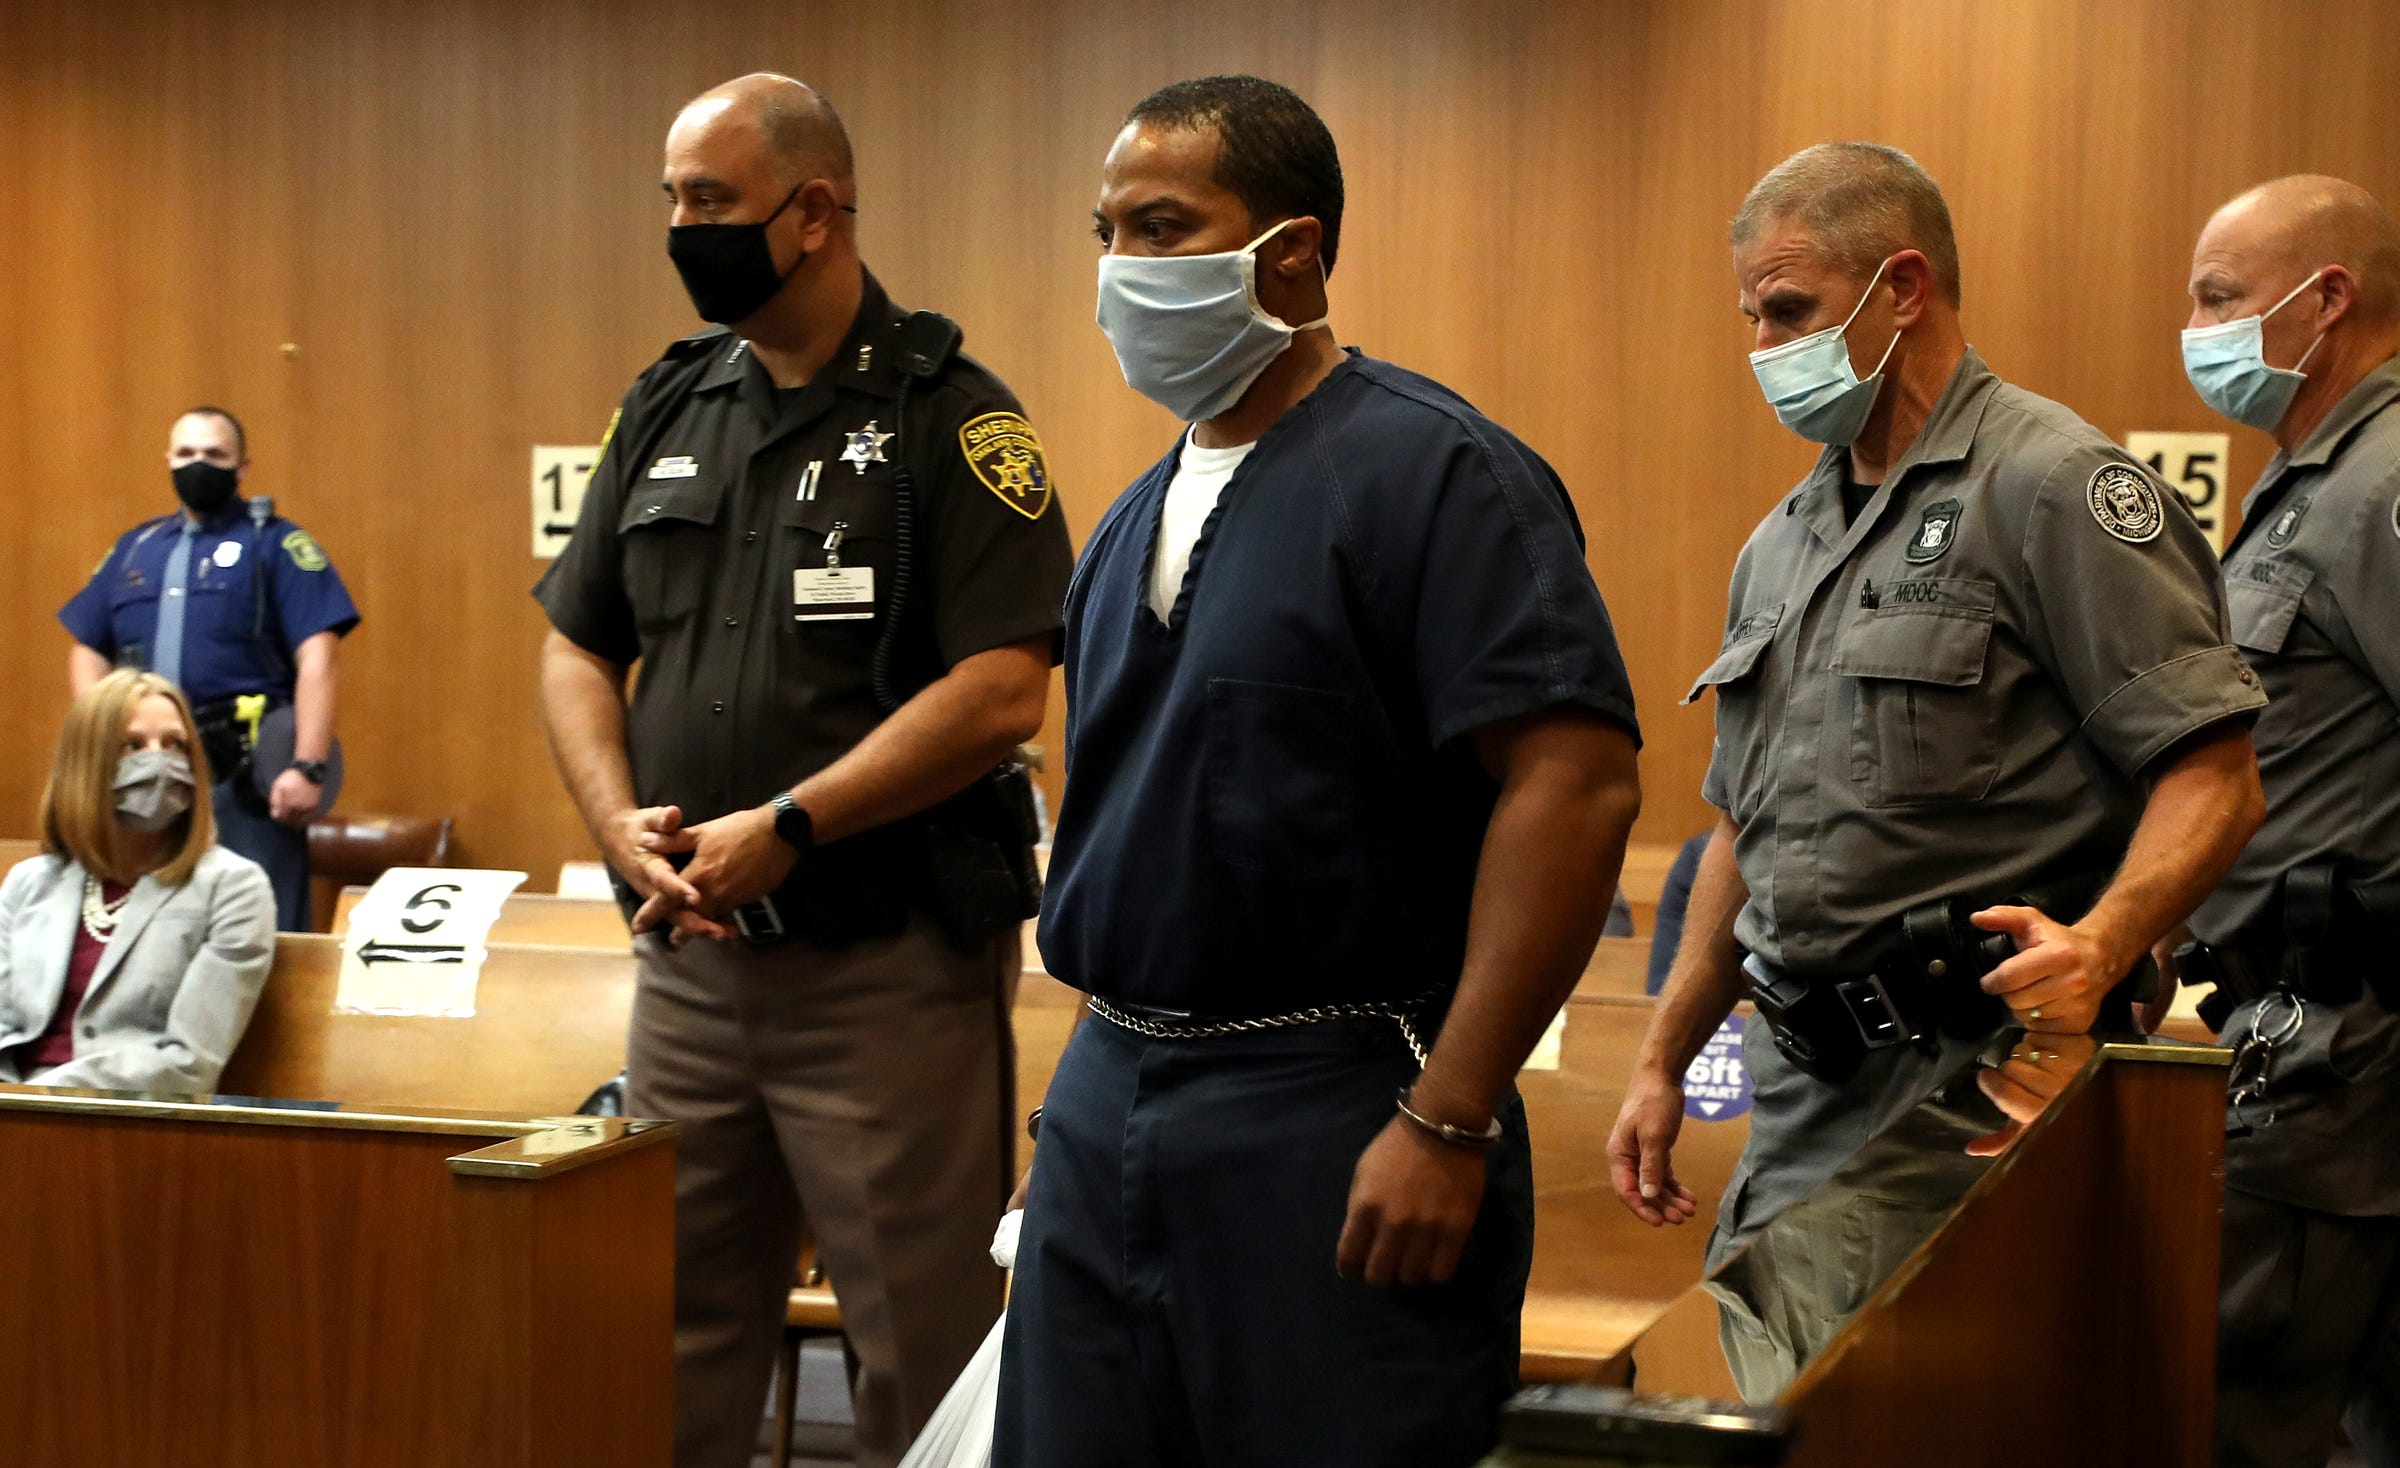 Convictions overturned for man sentenced to life for fire that killed 5 children